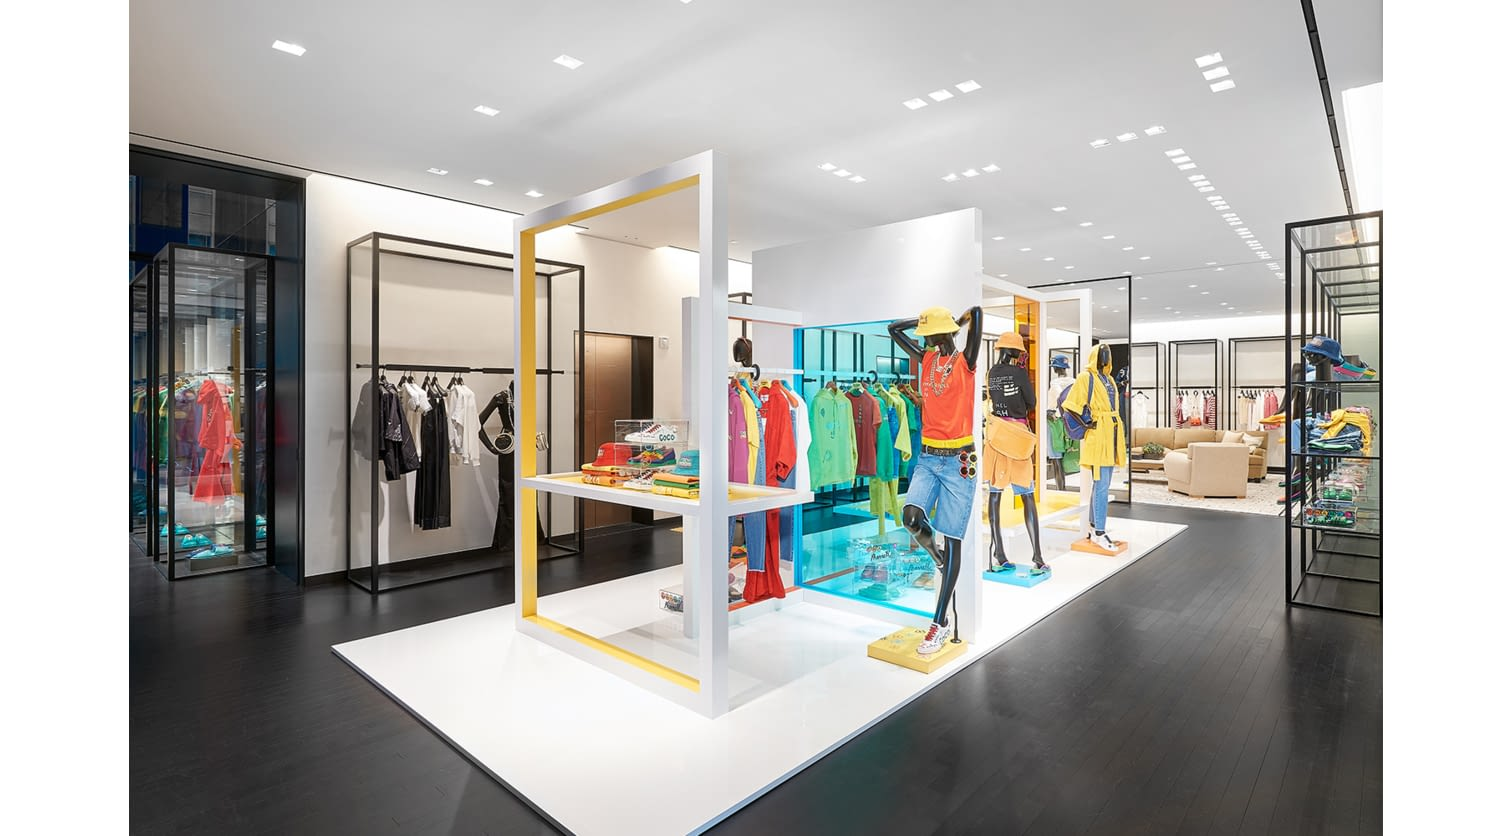 CHANEL-PHARRELL capsule - decor pictures by Olivier Saillant (1)_LD.jpg